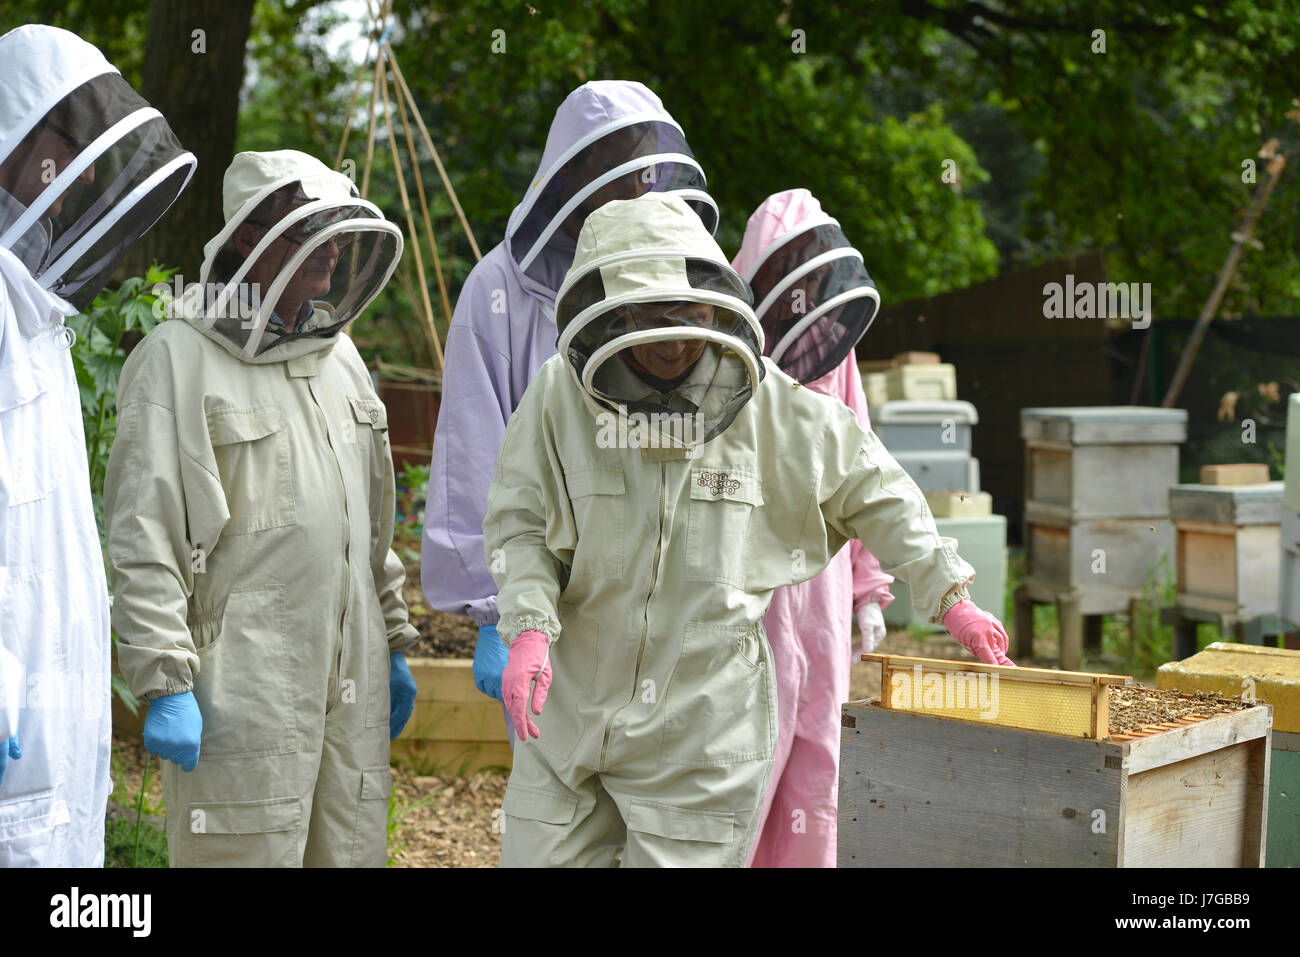 Bee keeping from Bee Urban in London's Kennington Park. - Stock Image